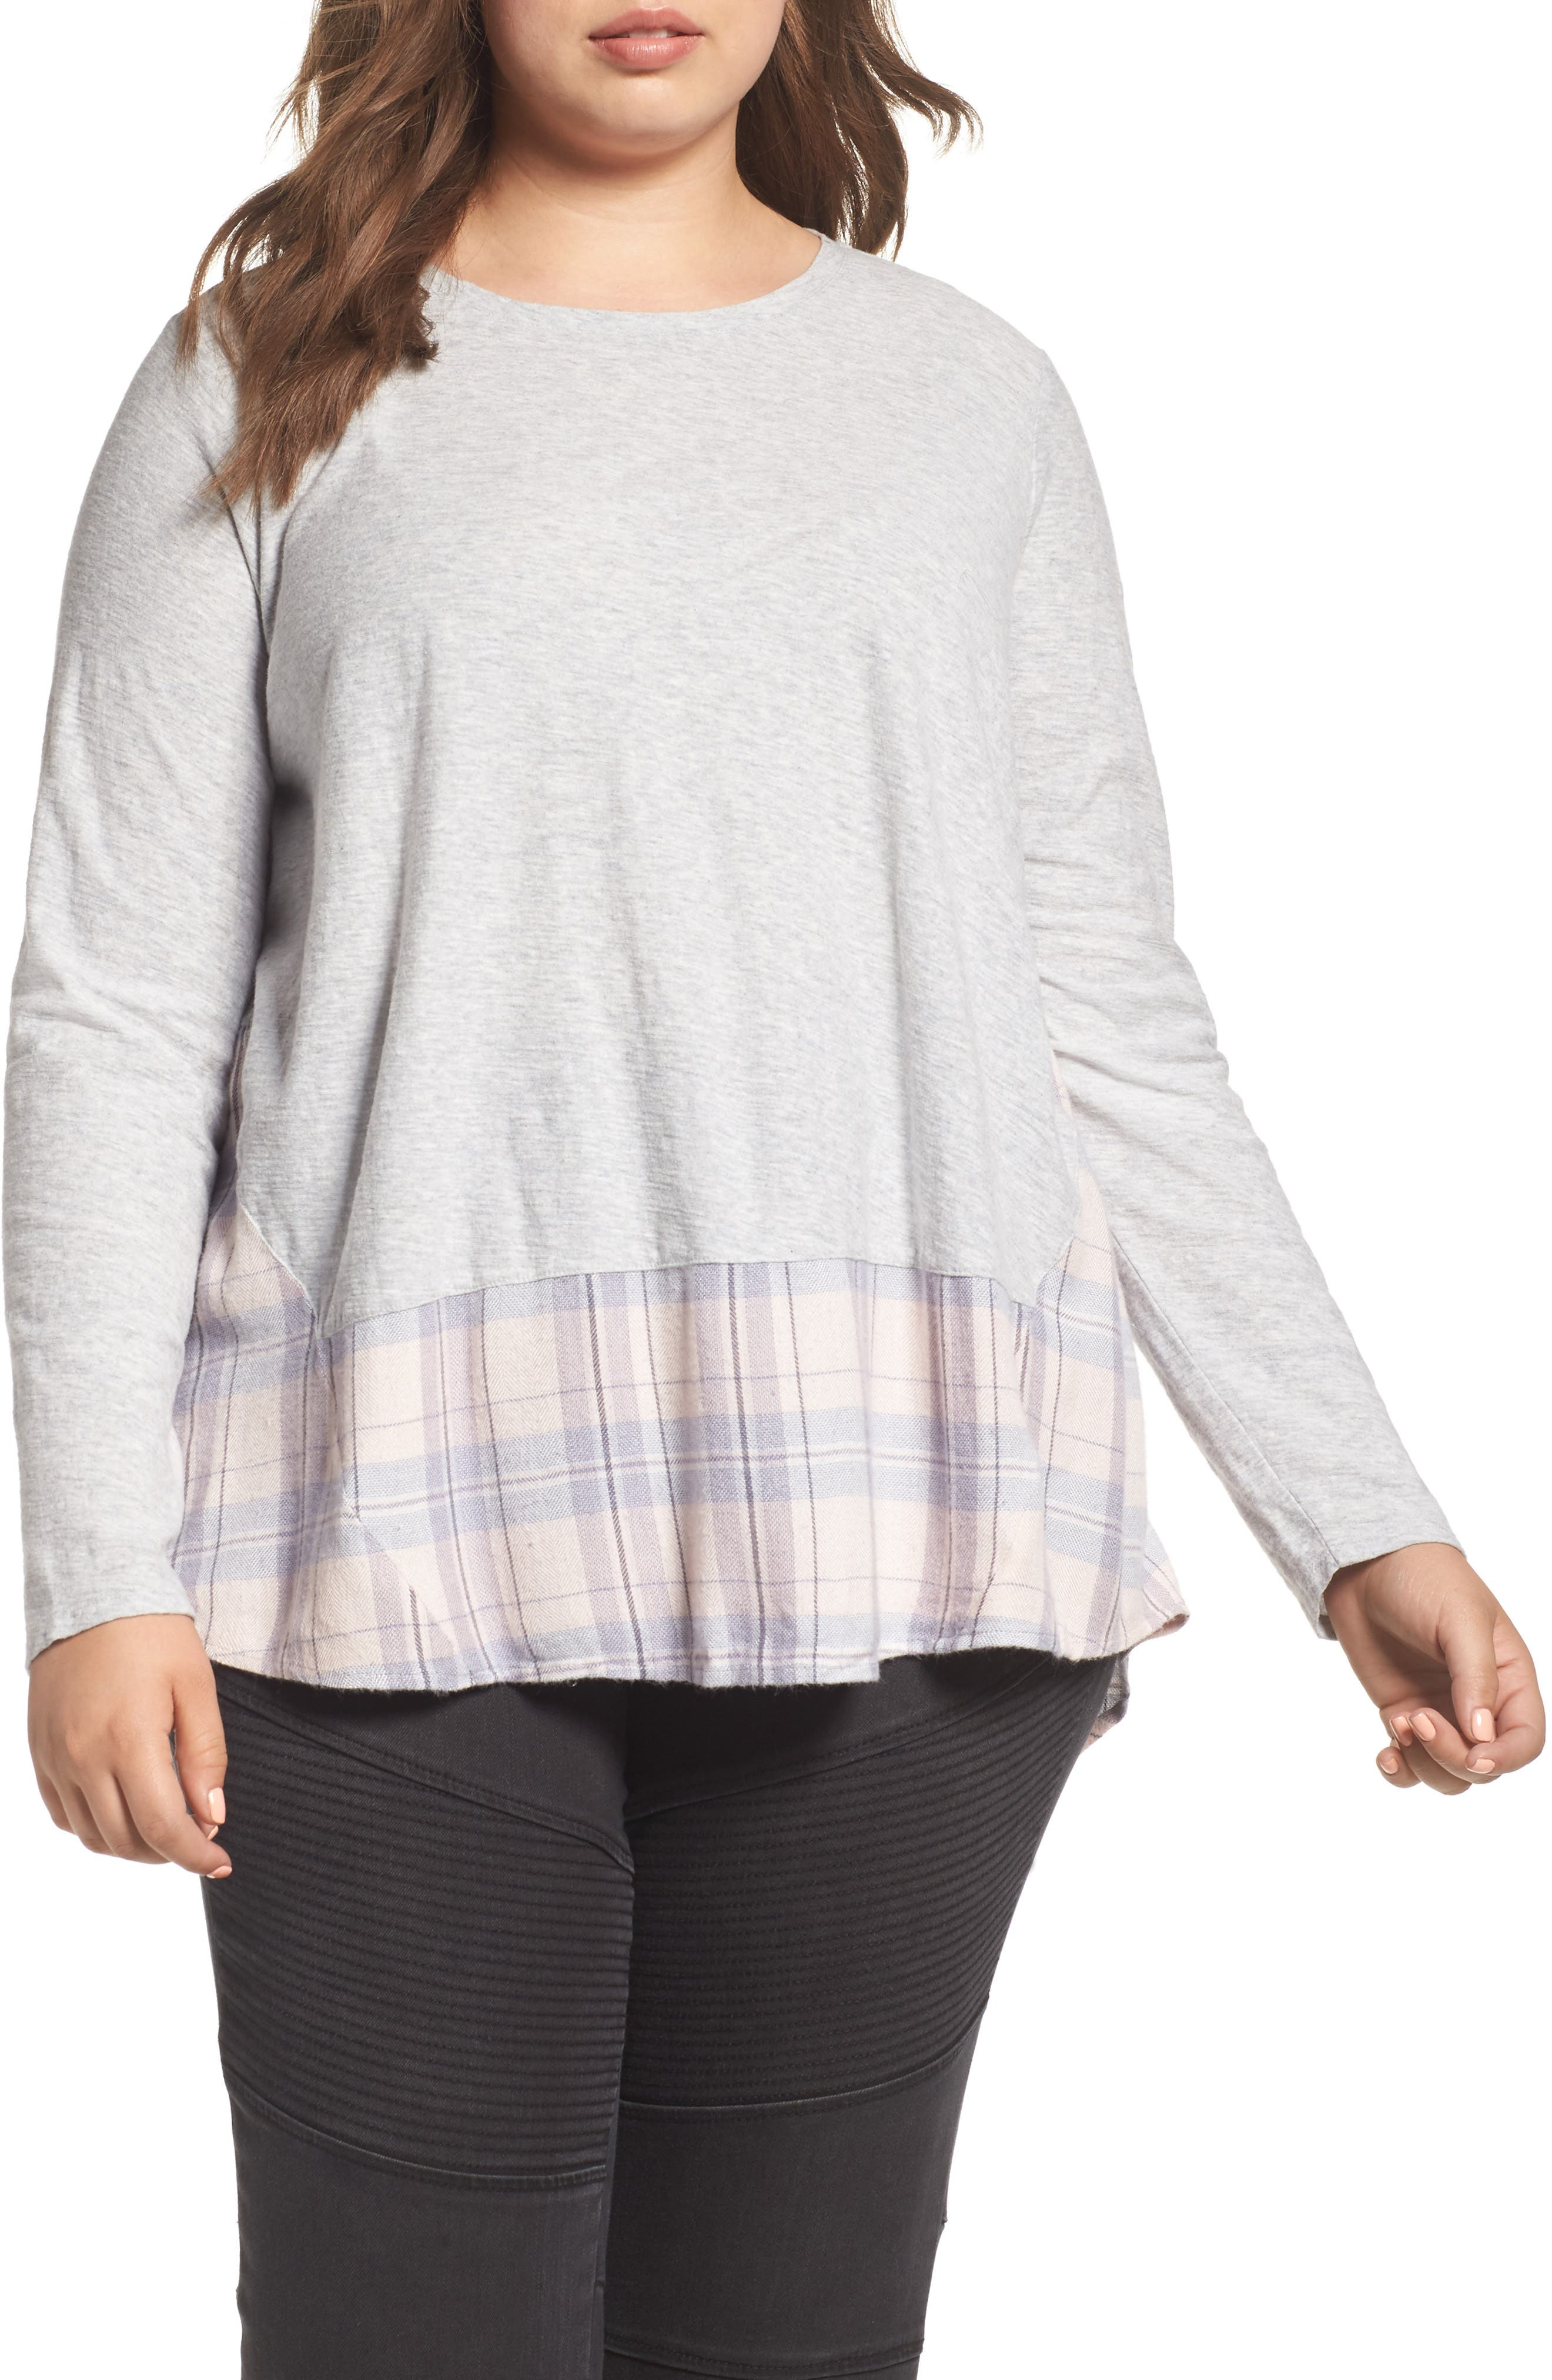 Alternate Image 1 Selected - Two by Vince Camuto Mixed Media Plaid Top (Plus Size)